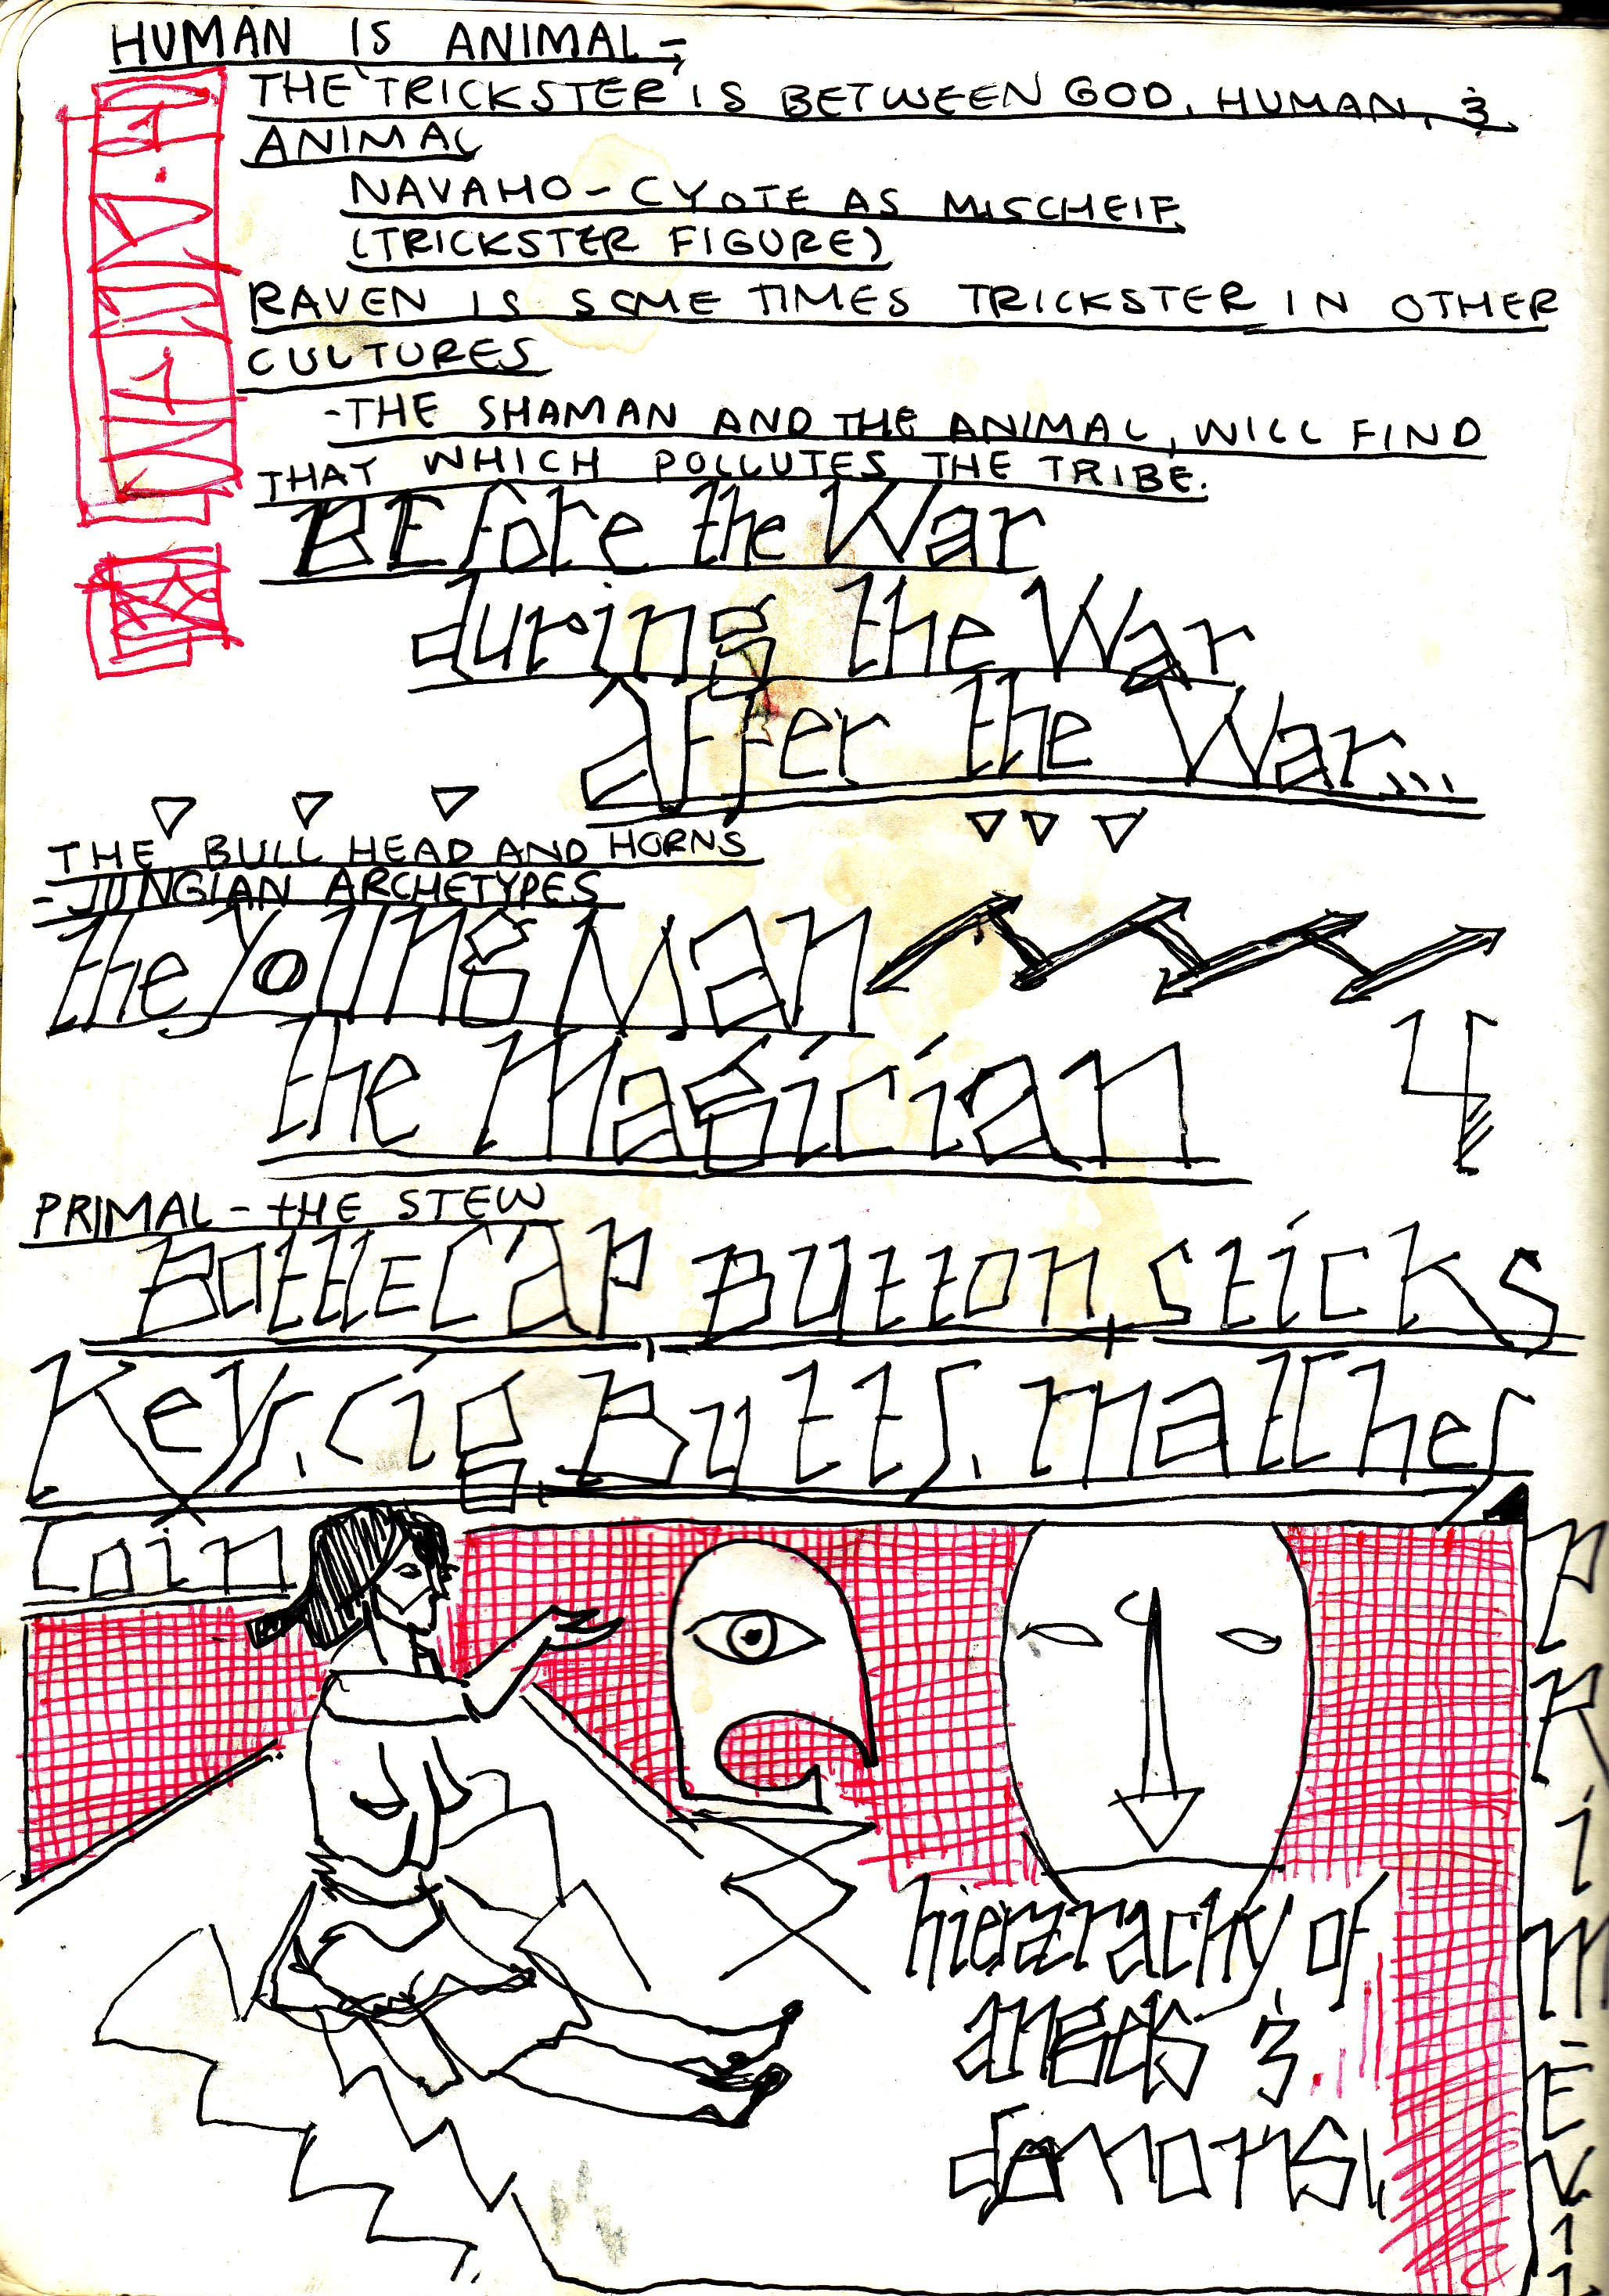 Sketchbook Journal #12: (RE)Immolation in Pagan Winter: page 104